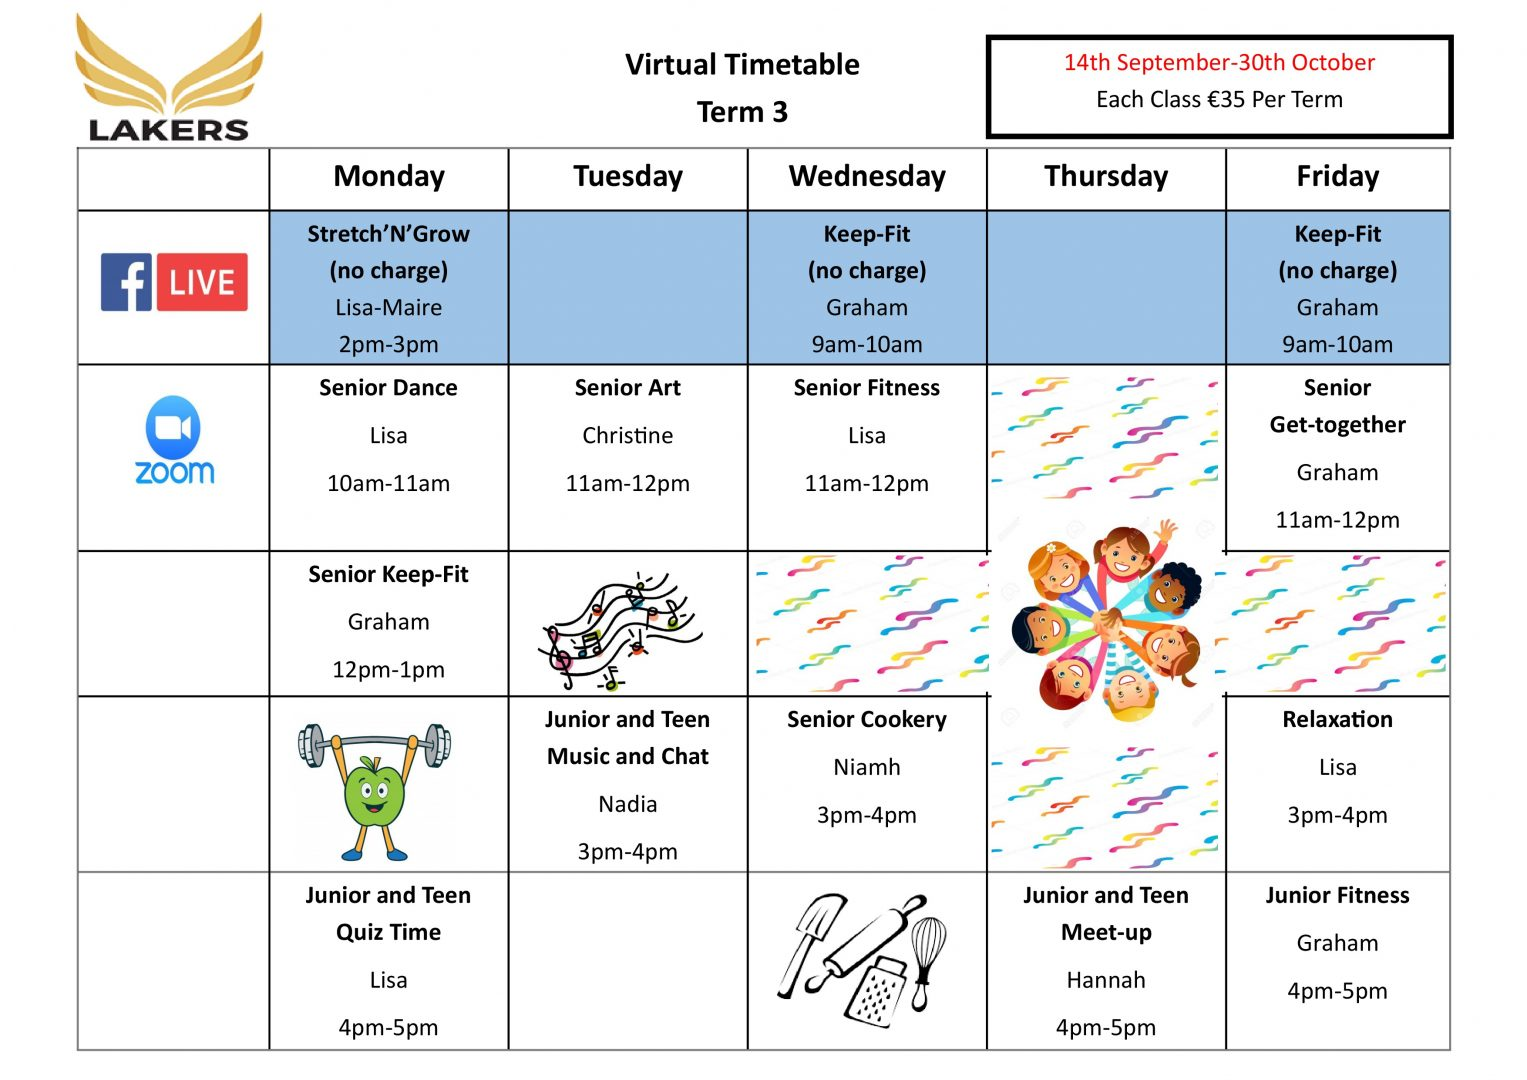 Term 3 Timetable 14th September 30th October Online Page 0